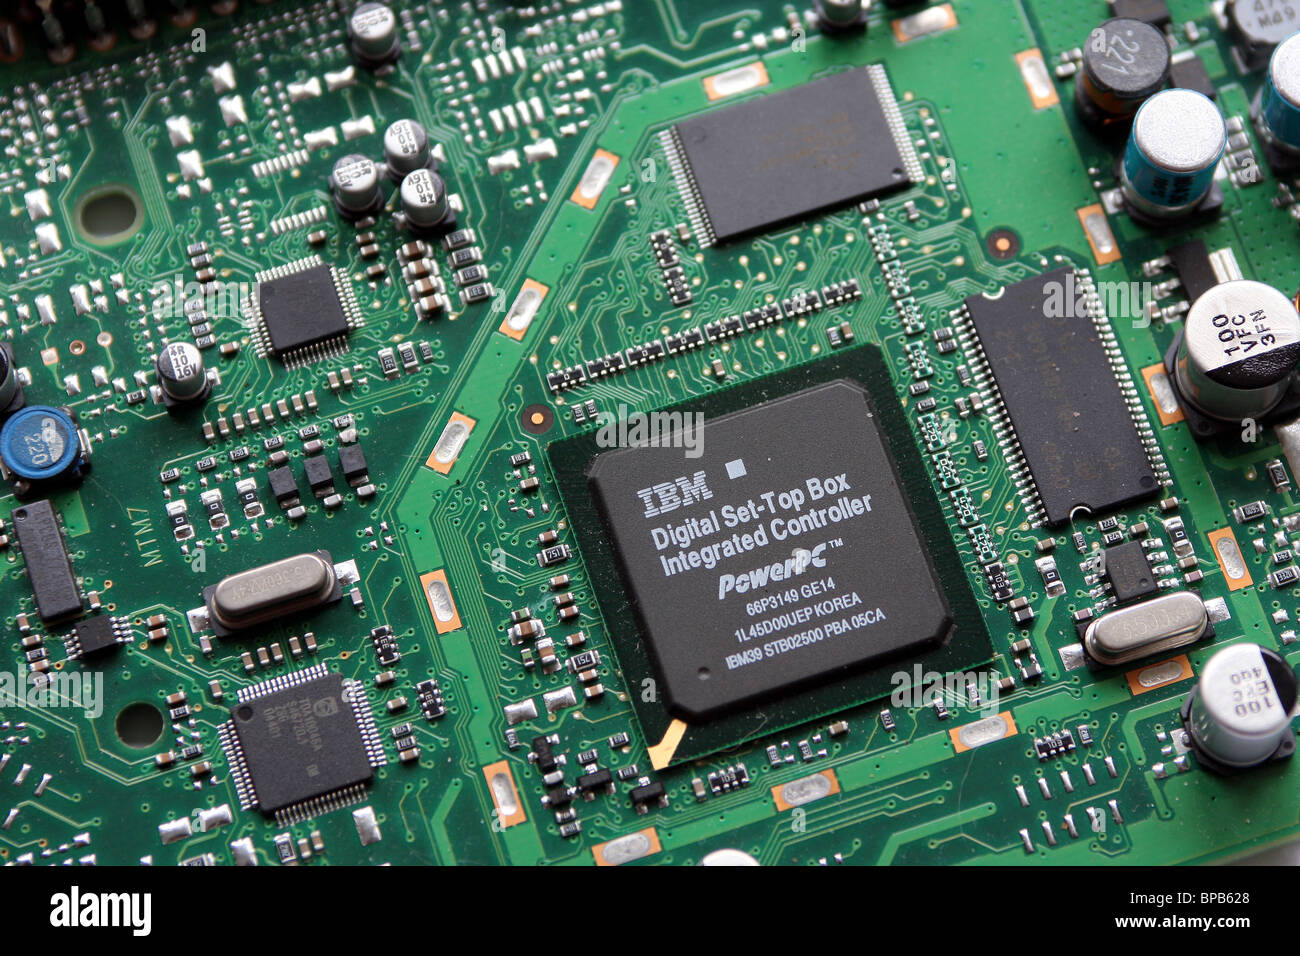 Printed Circuit Board of a DVB digital Television receiver box made by Sagem to receive free to air terrestrial - Stock Image